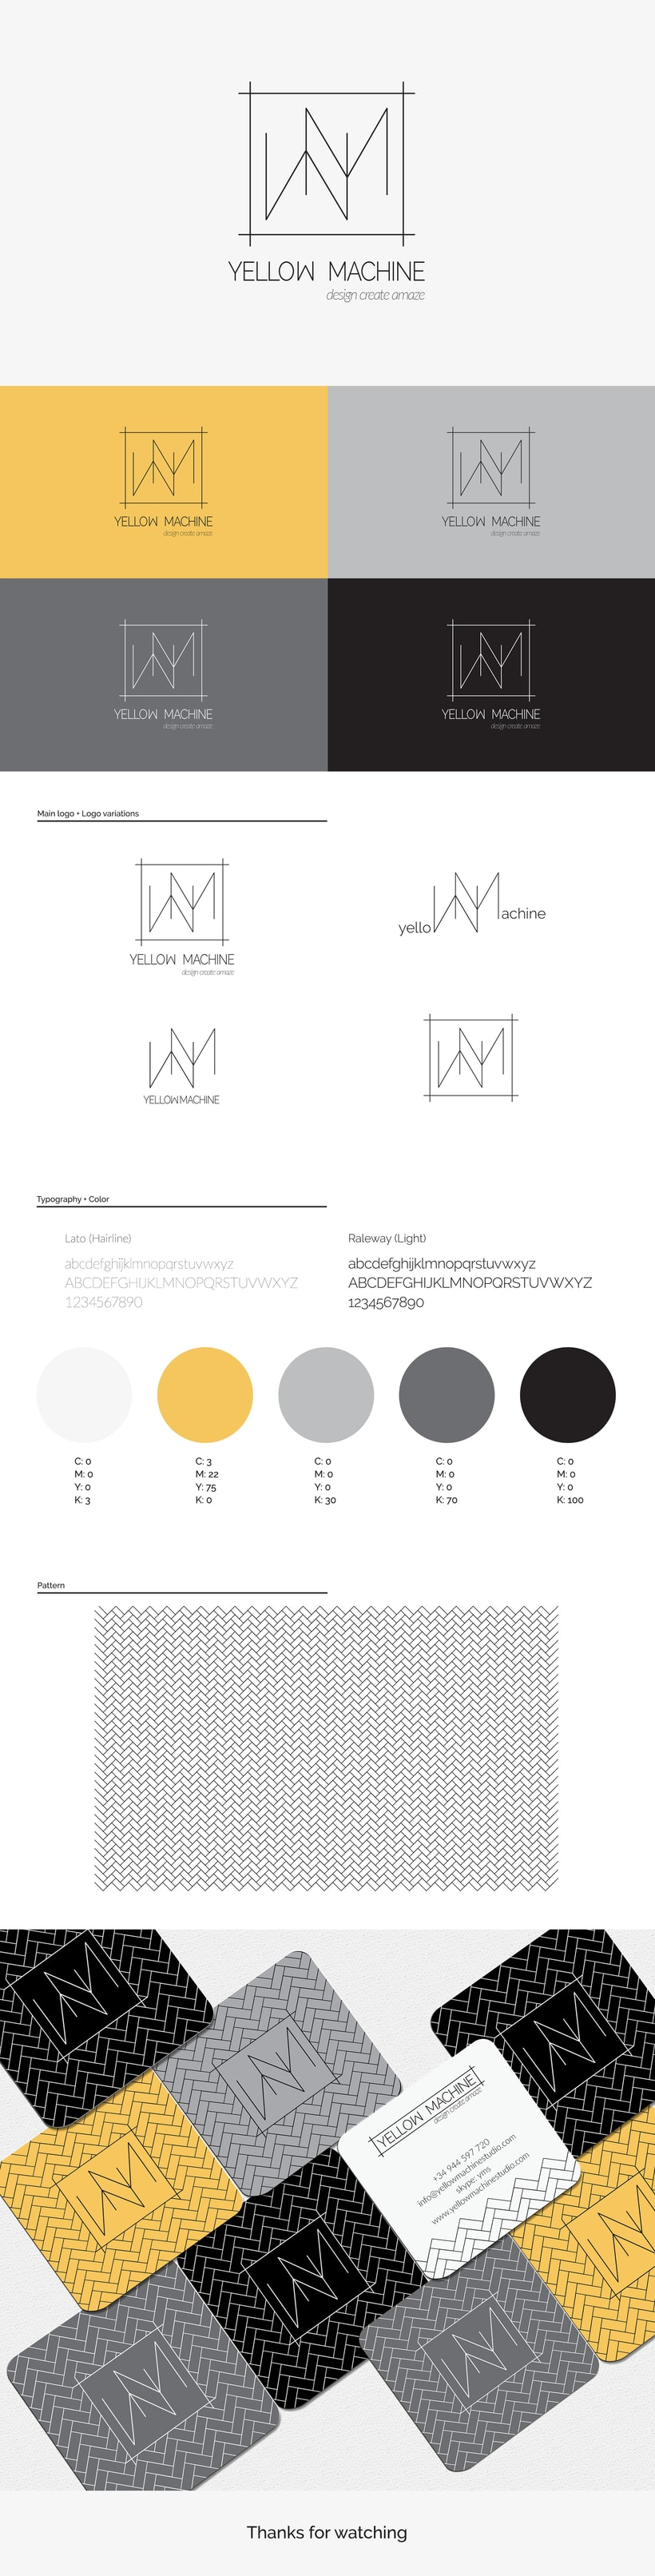 Yellow Machine Studio Identity -1